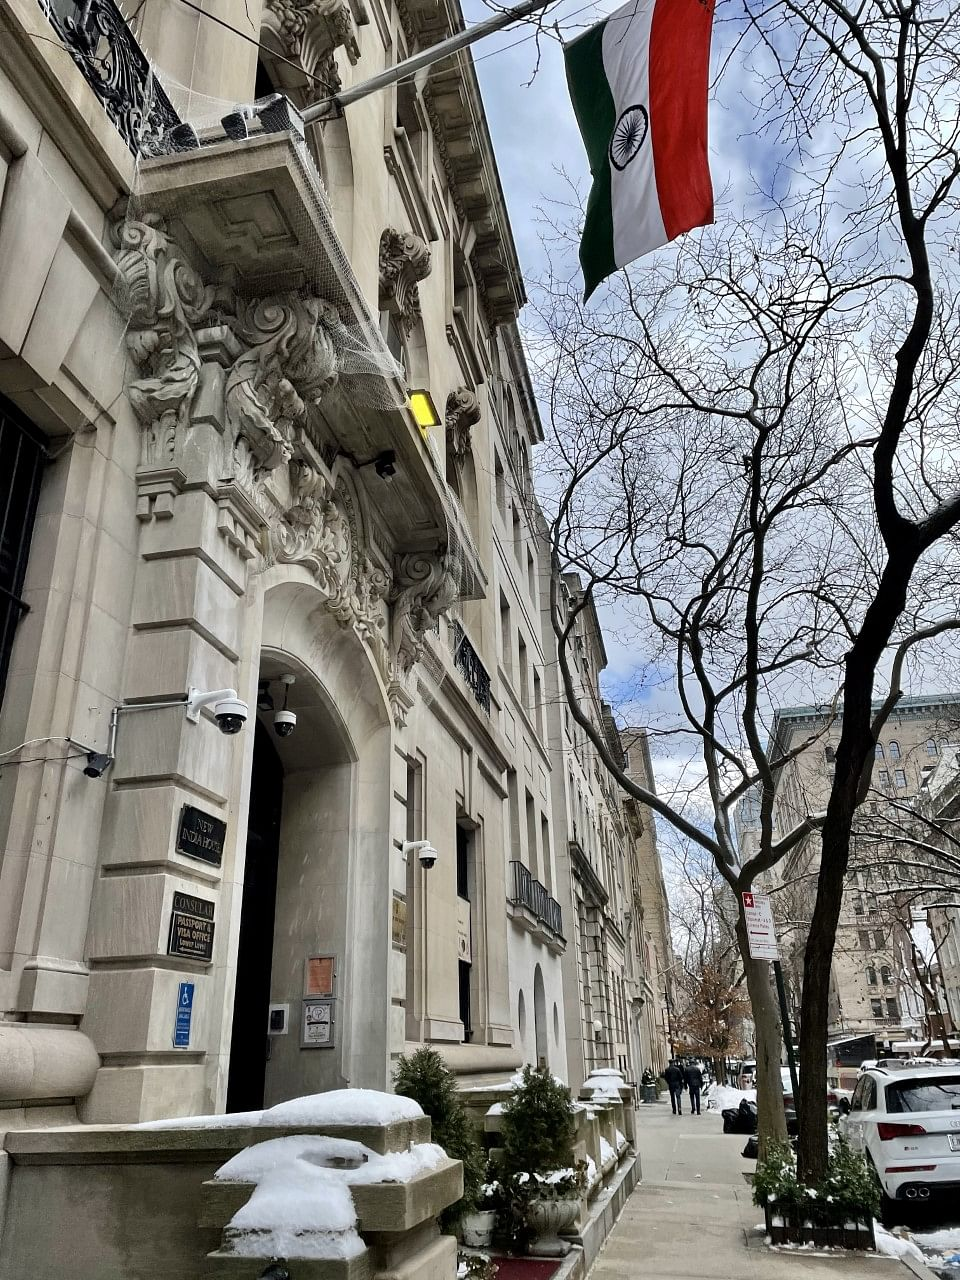 The Indian consulate in New York City, on Feb. 20, 2021. (Photograph: Shera Bhala)